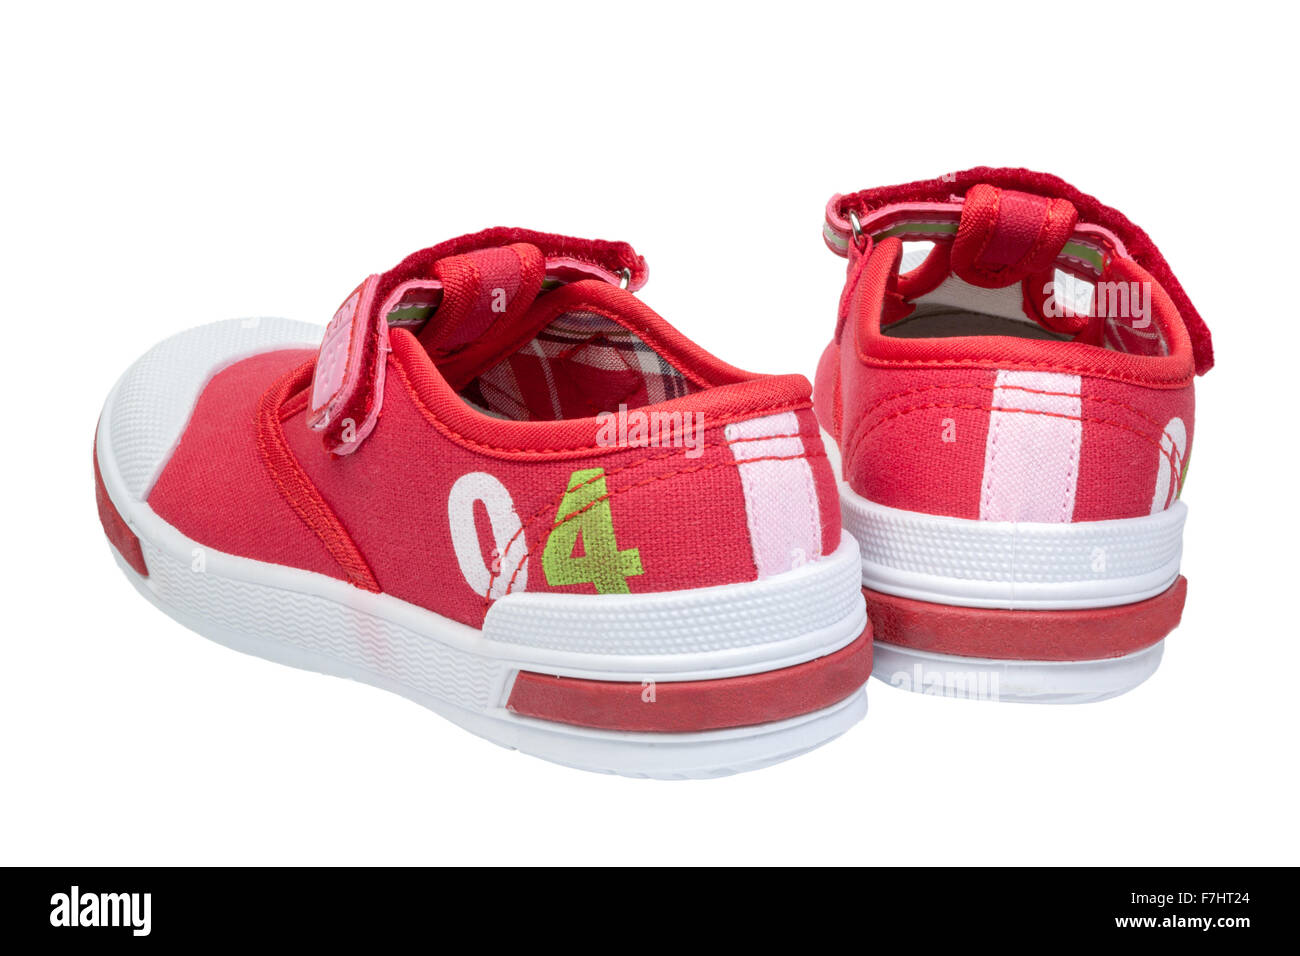 pair of red child  sneakers isolated on white background - Stock Image